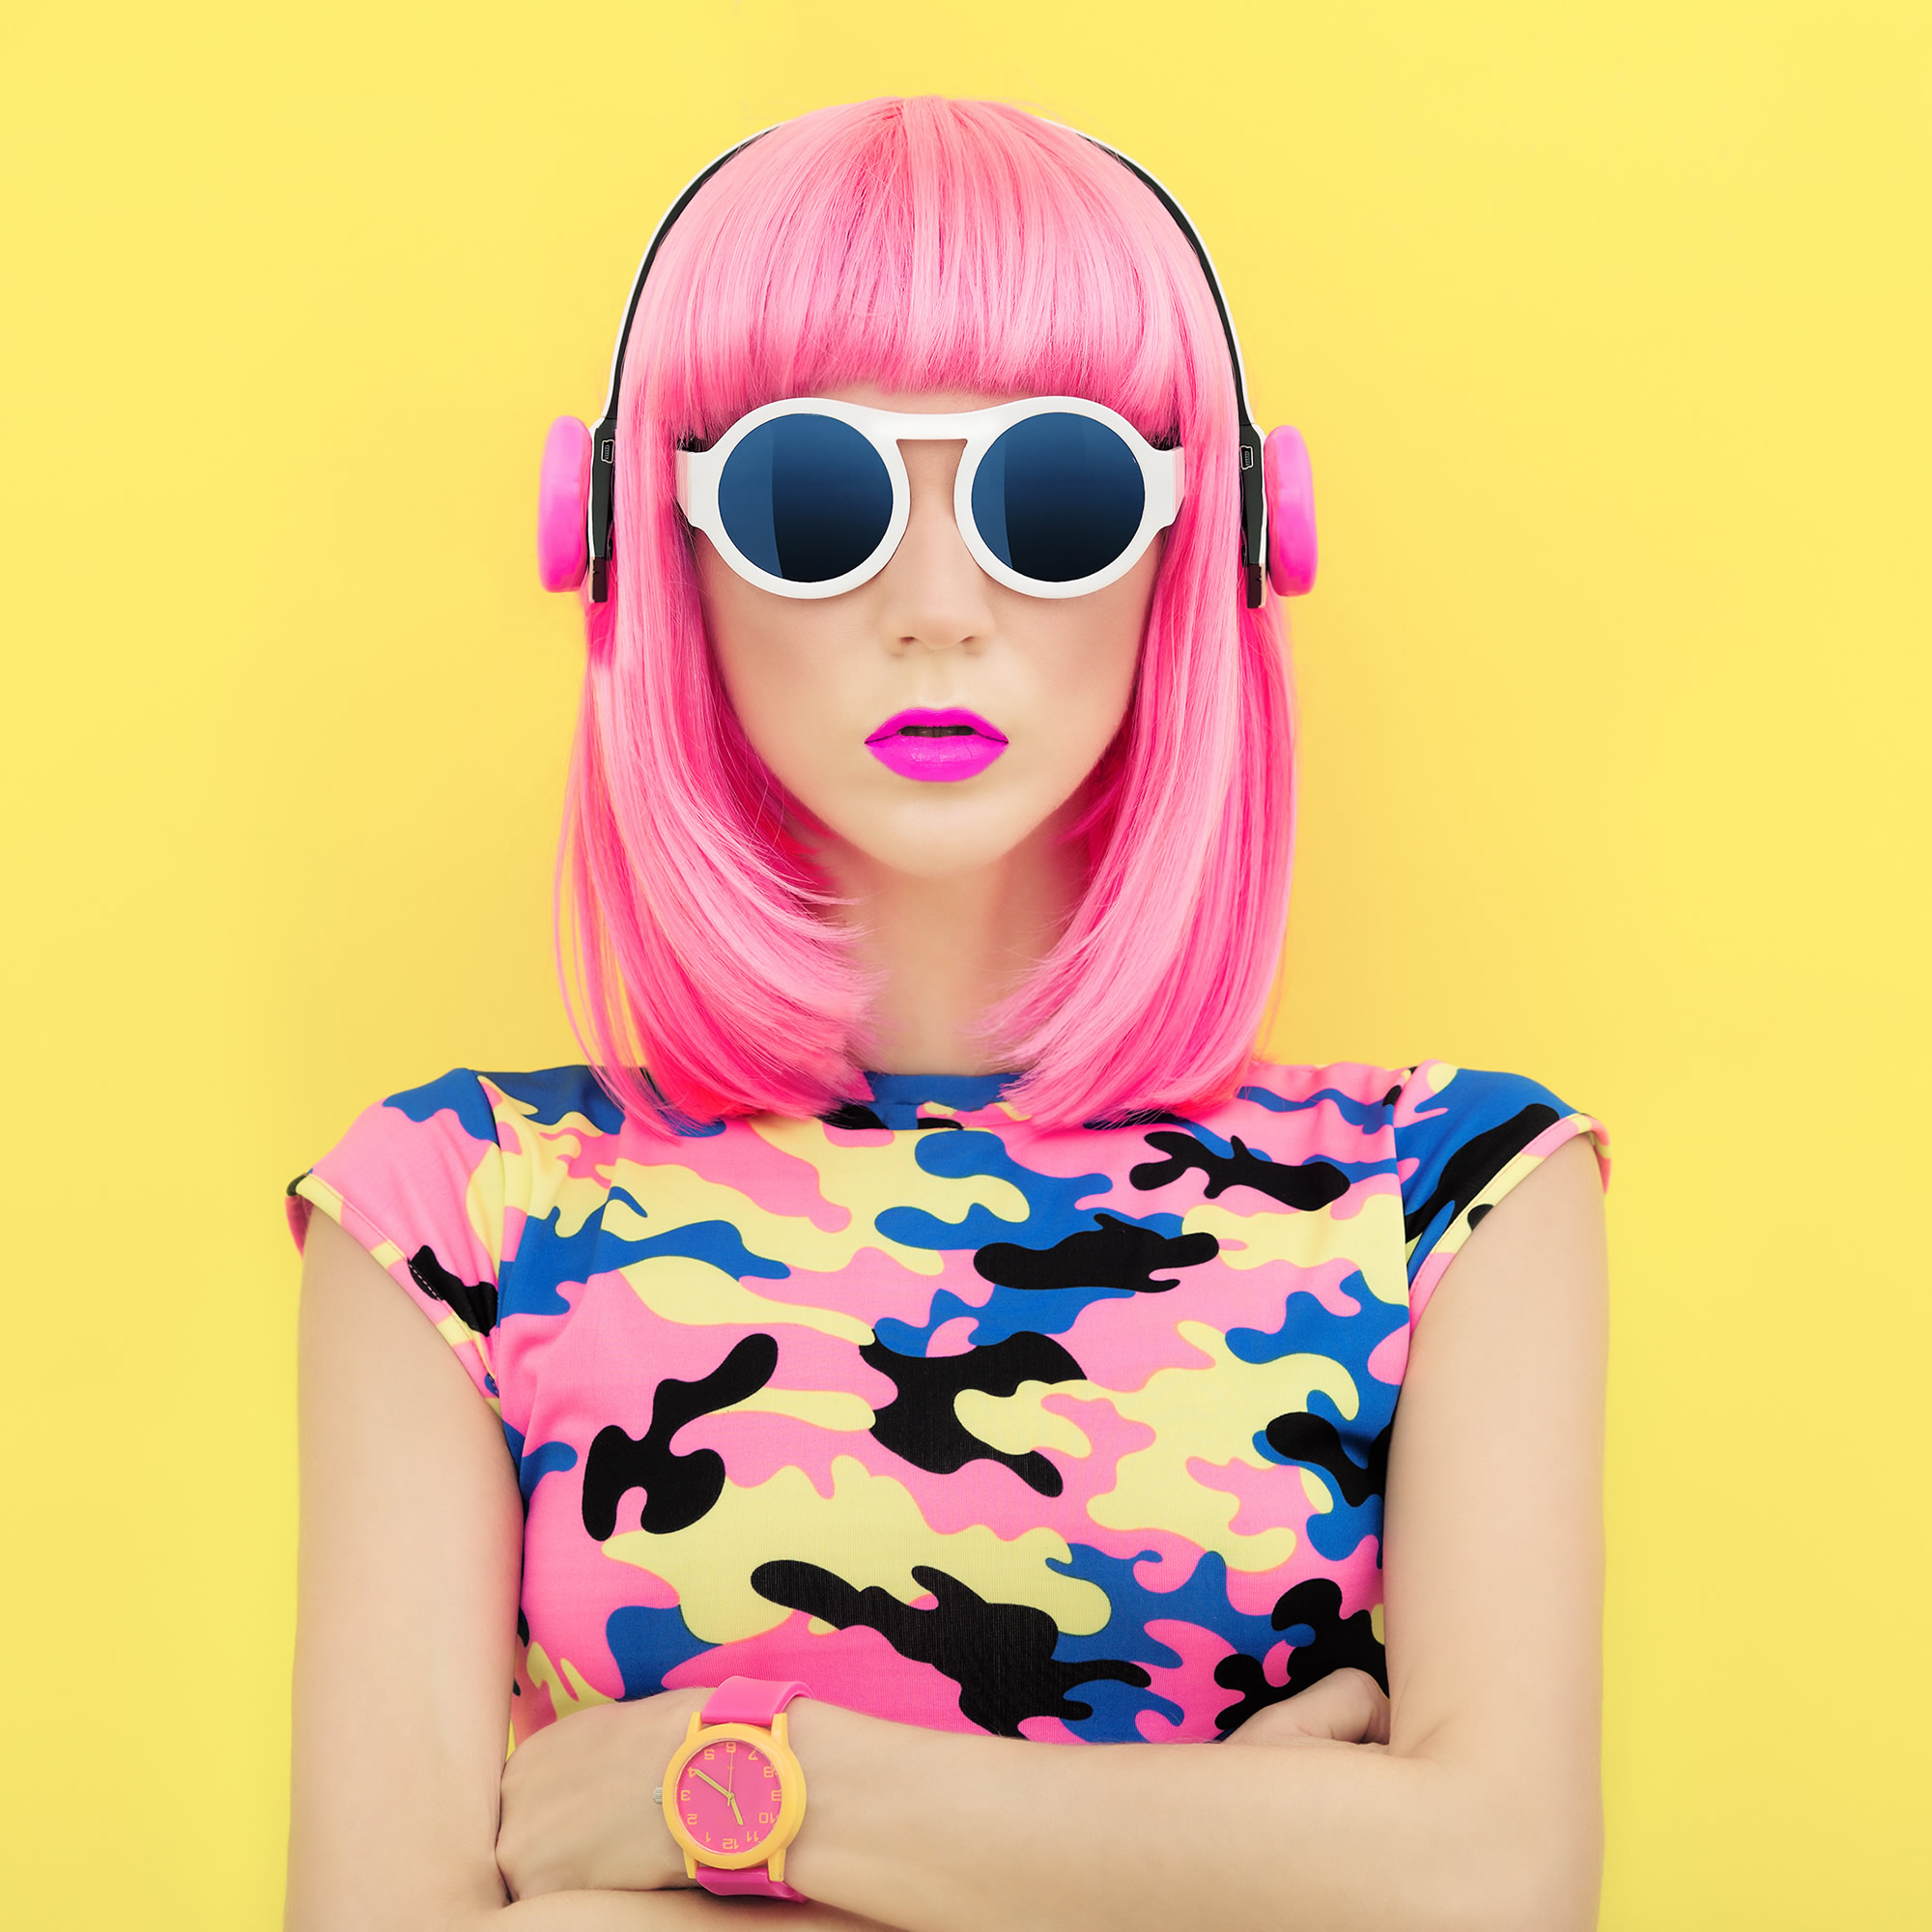 pink haired girl in a military pink top with headphones on yellow background